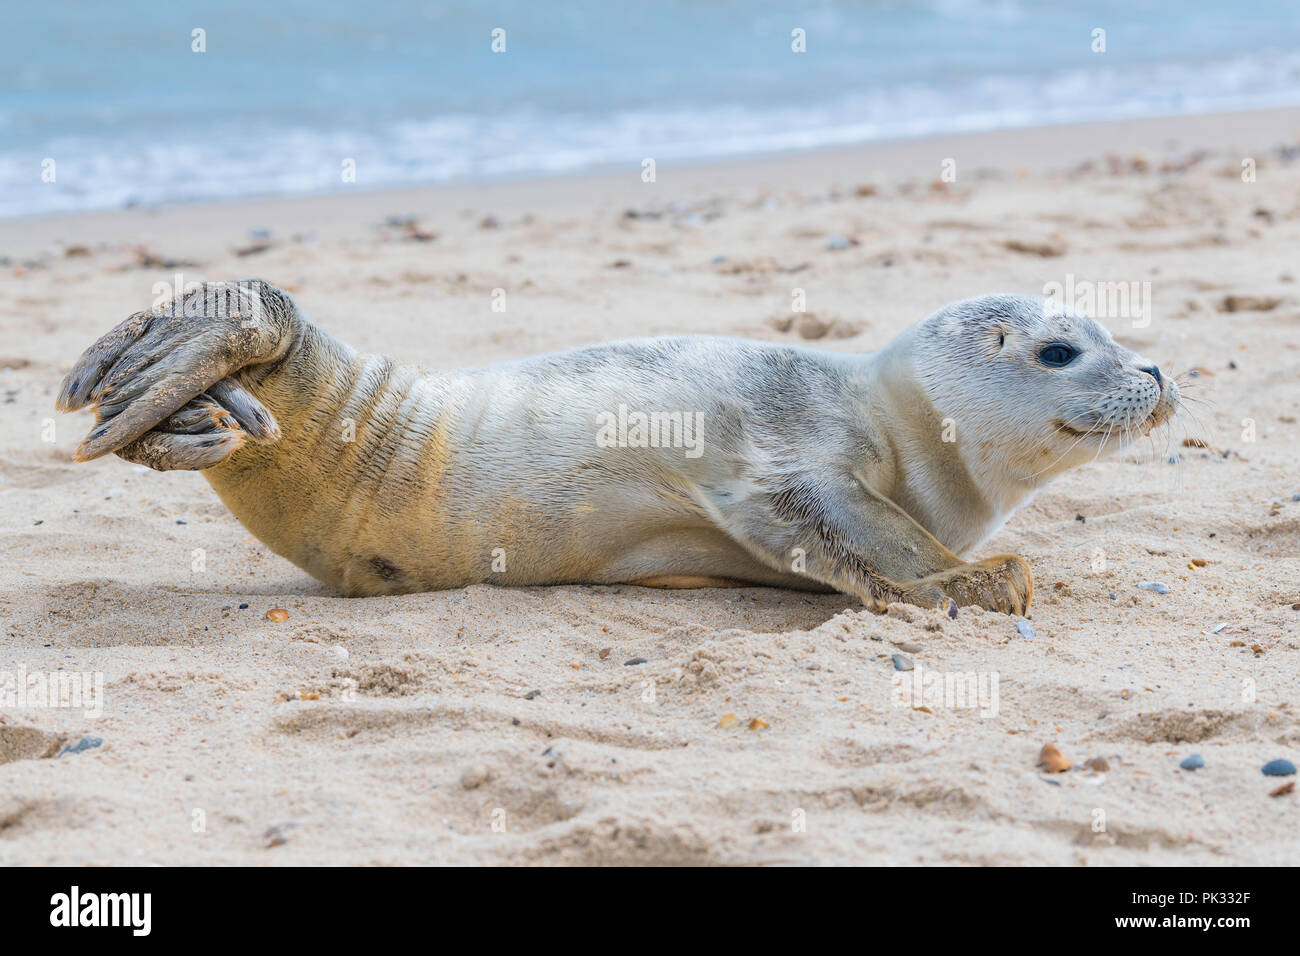 Sea Lion Pups relaxing on the beach on Martello Bay near Clacton-on-sea - Stock Image